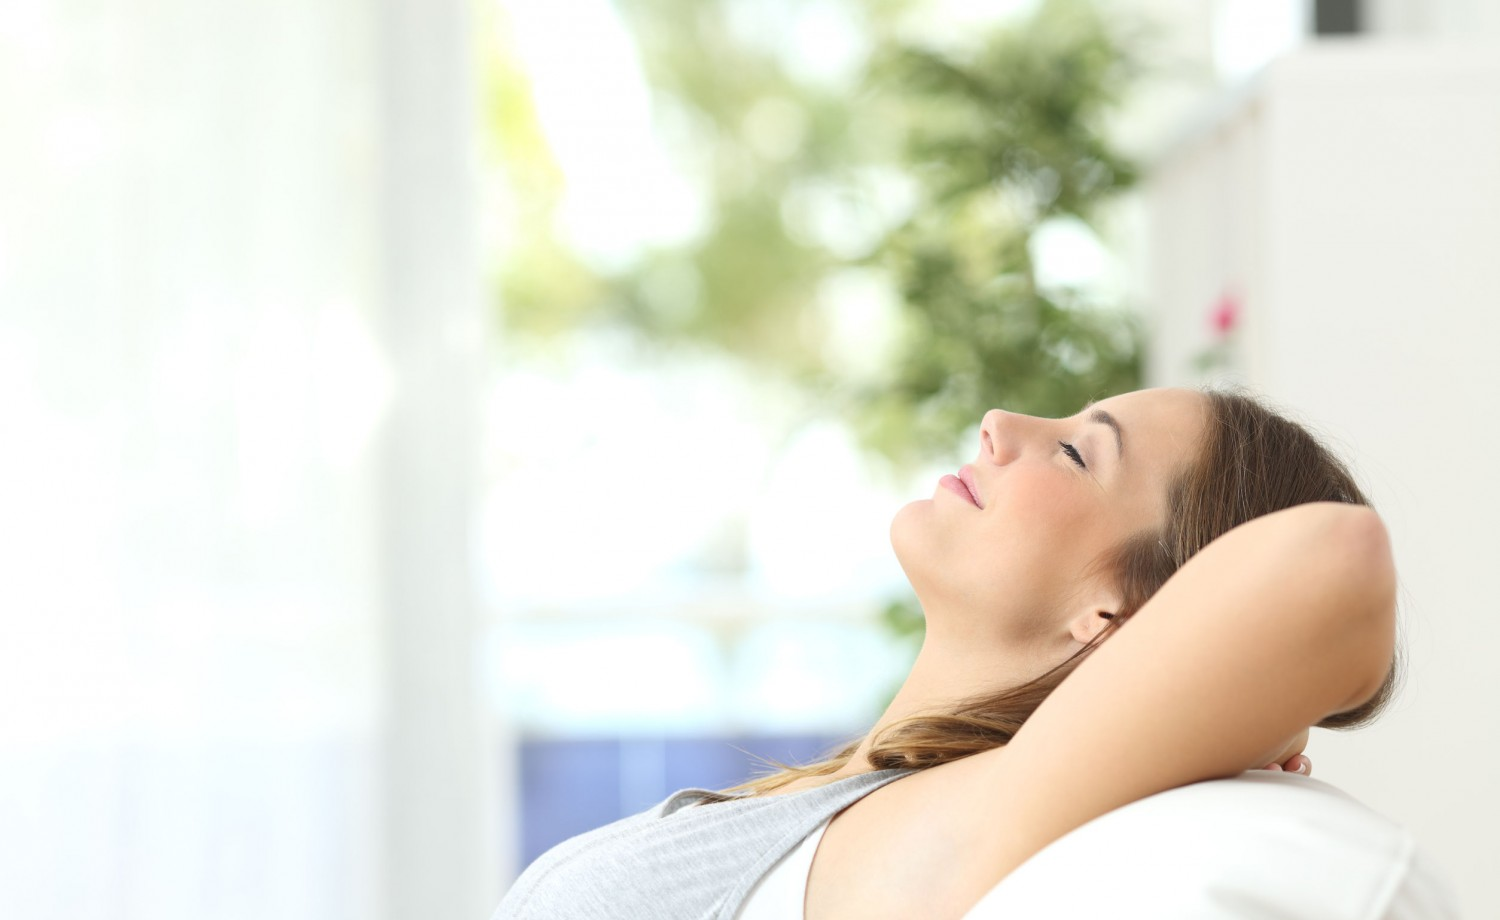 50532401 - profile of a beautiful woman relaxing lying on a couch at home